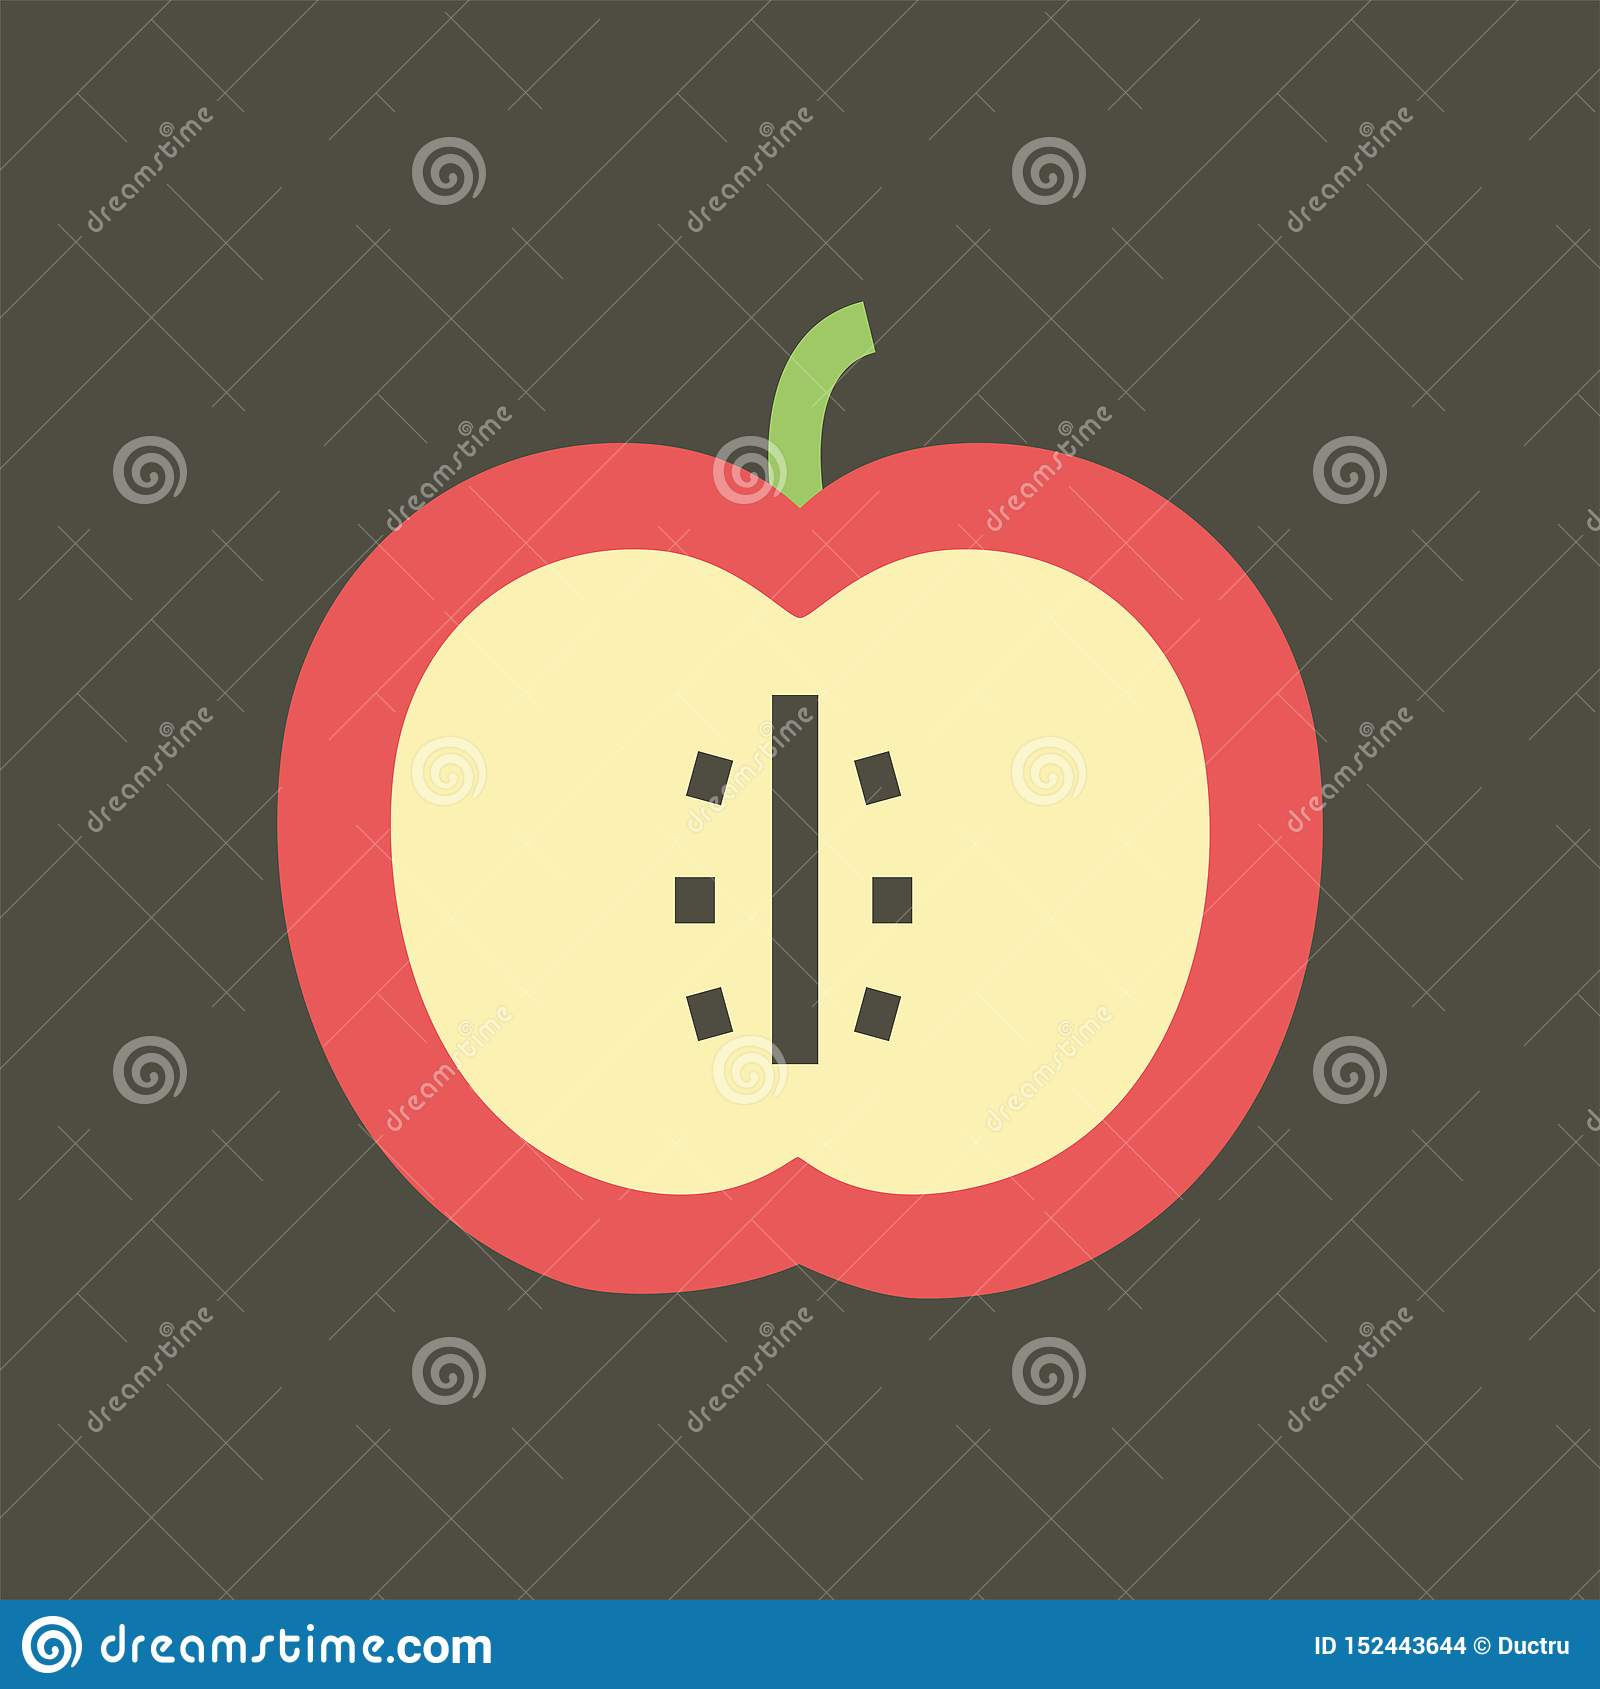 Simple vector illustration with ability to change. Silhouette icon sliced apple